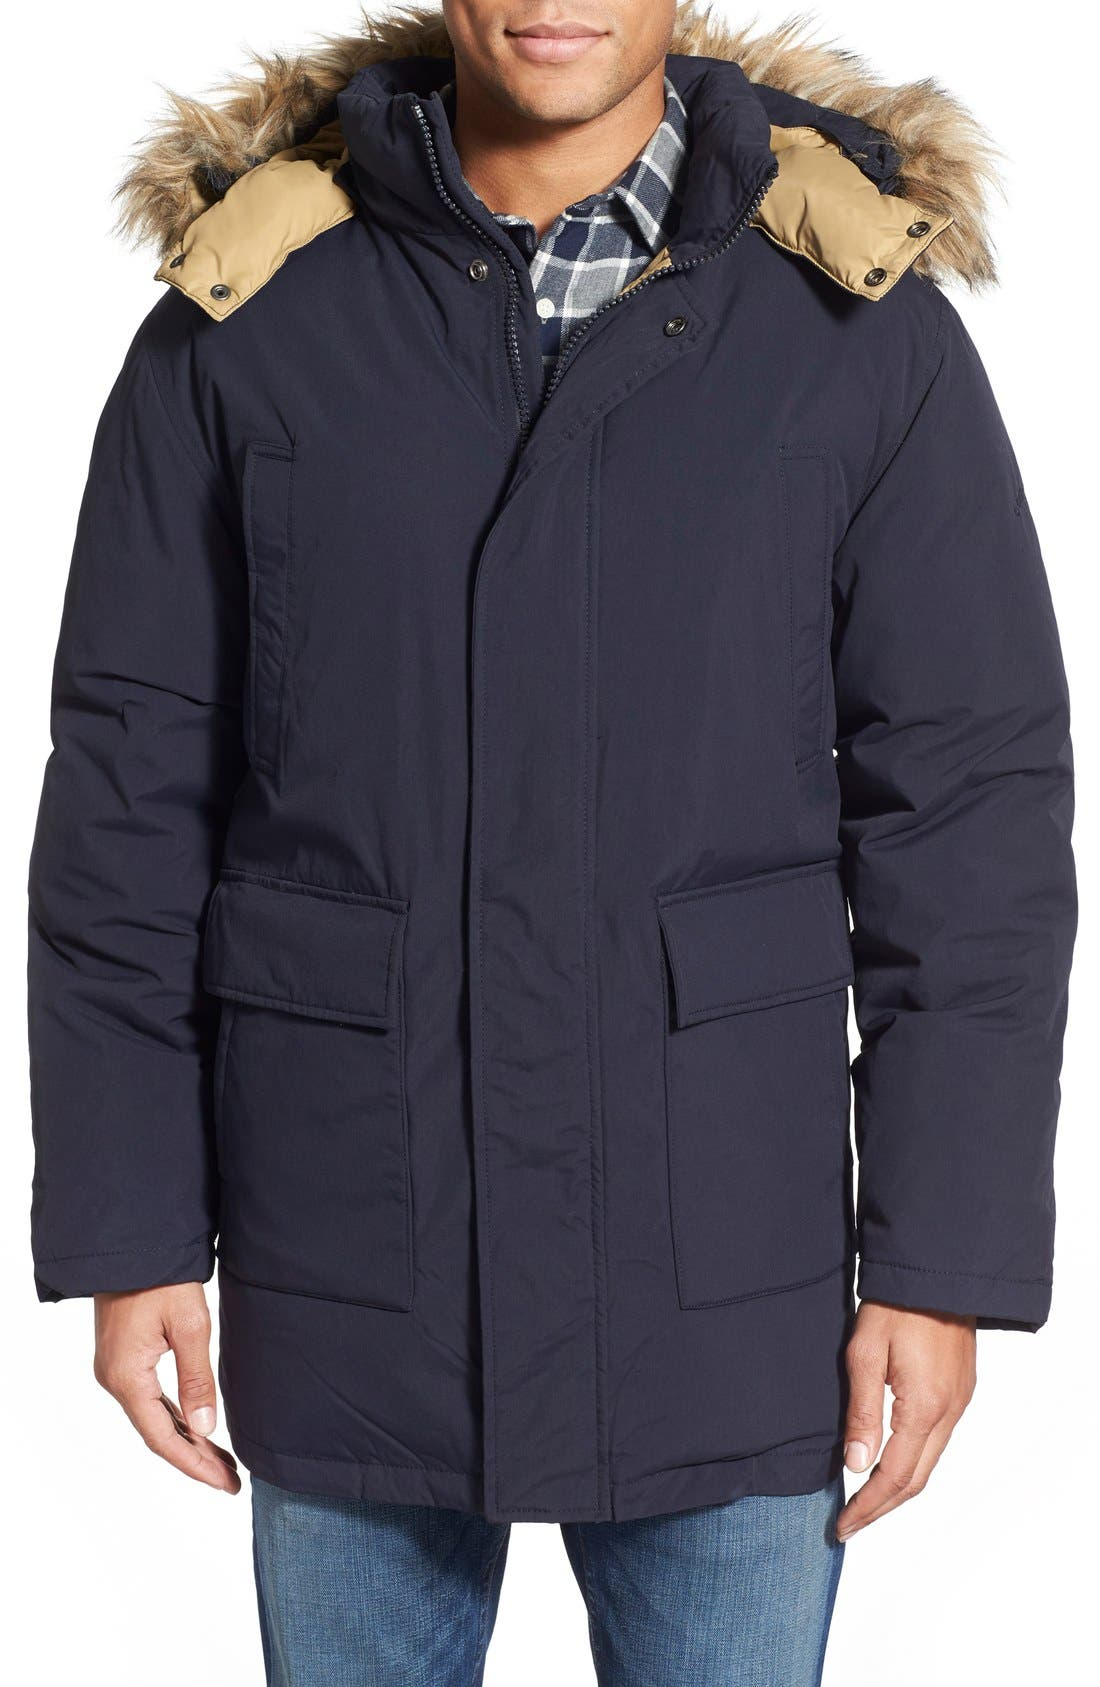 'Iceberg' Water Resistant Down Parka with Faux Fur Trim,                             Main thumbnail 1, color,                             410